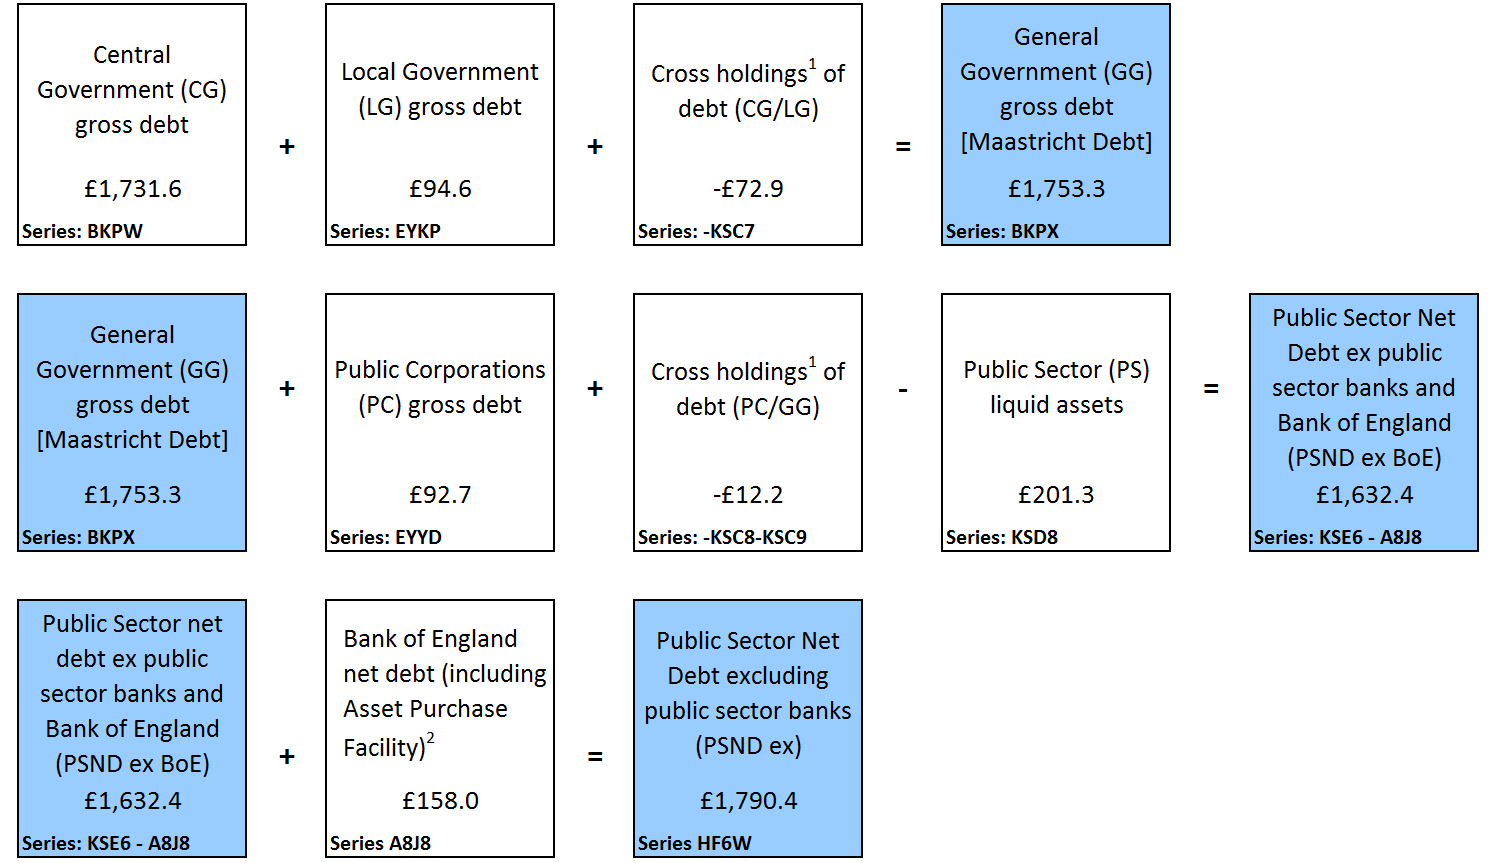 Presents public sector debt excluding public sector banks at the end of October 2017 by sub-sector